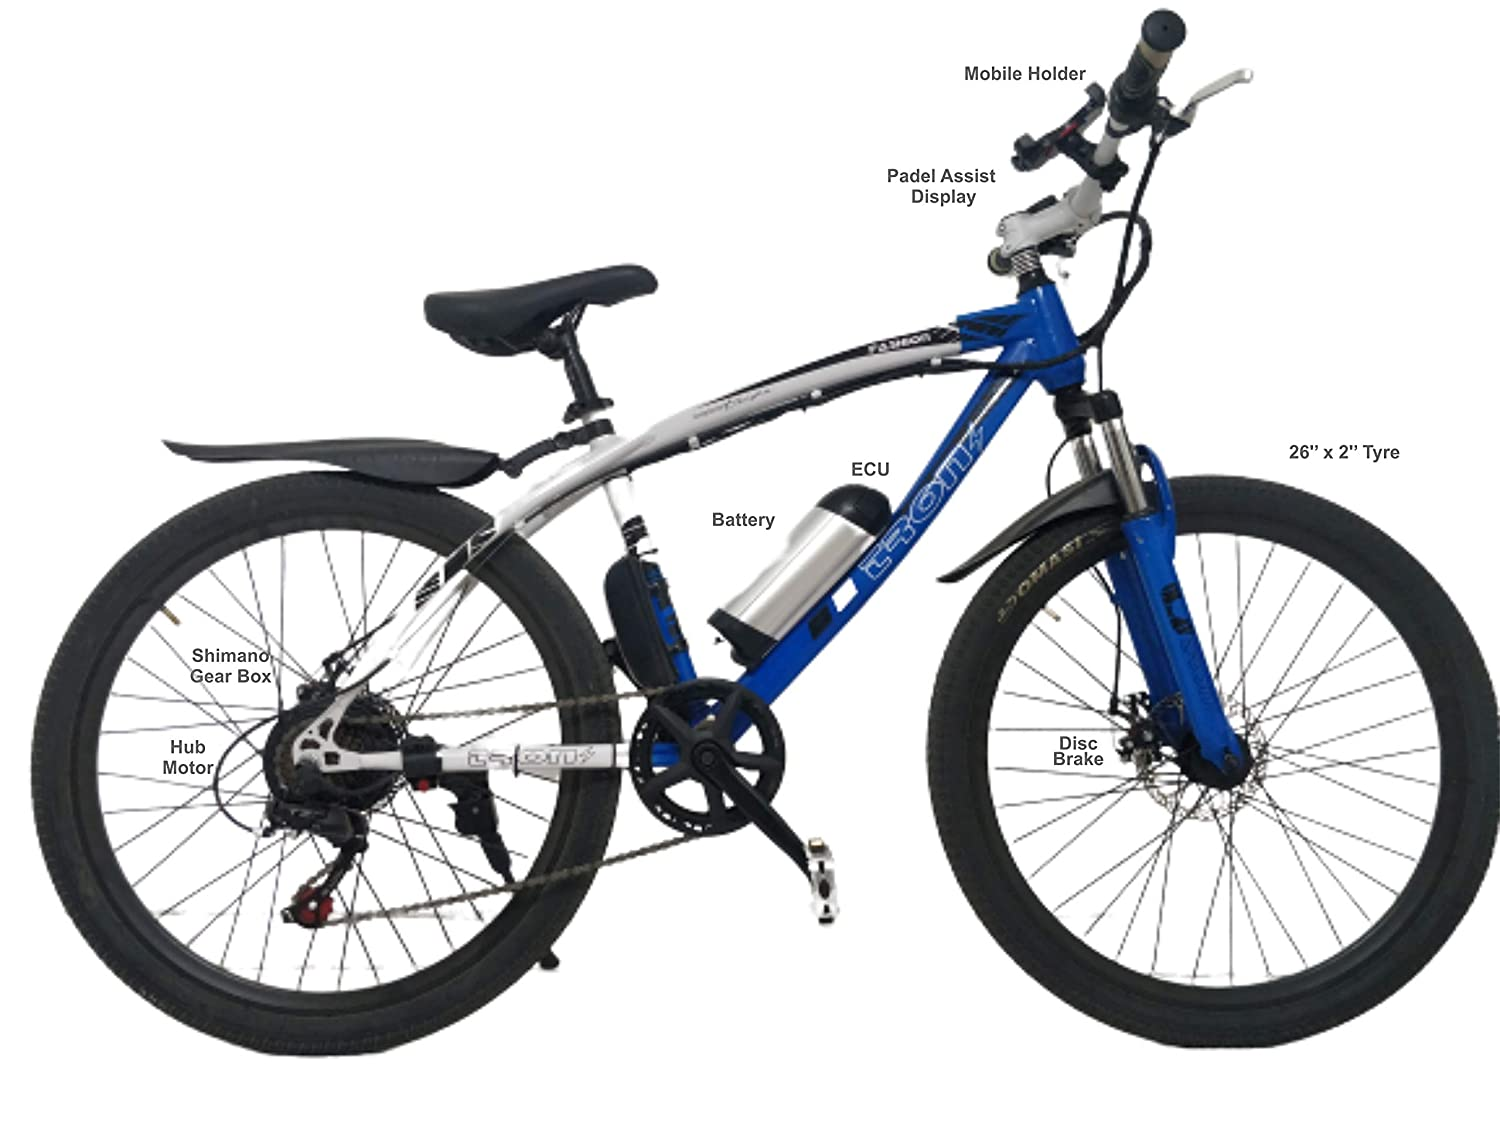 Reasons to Buy an Electric Bike